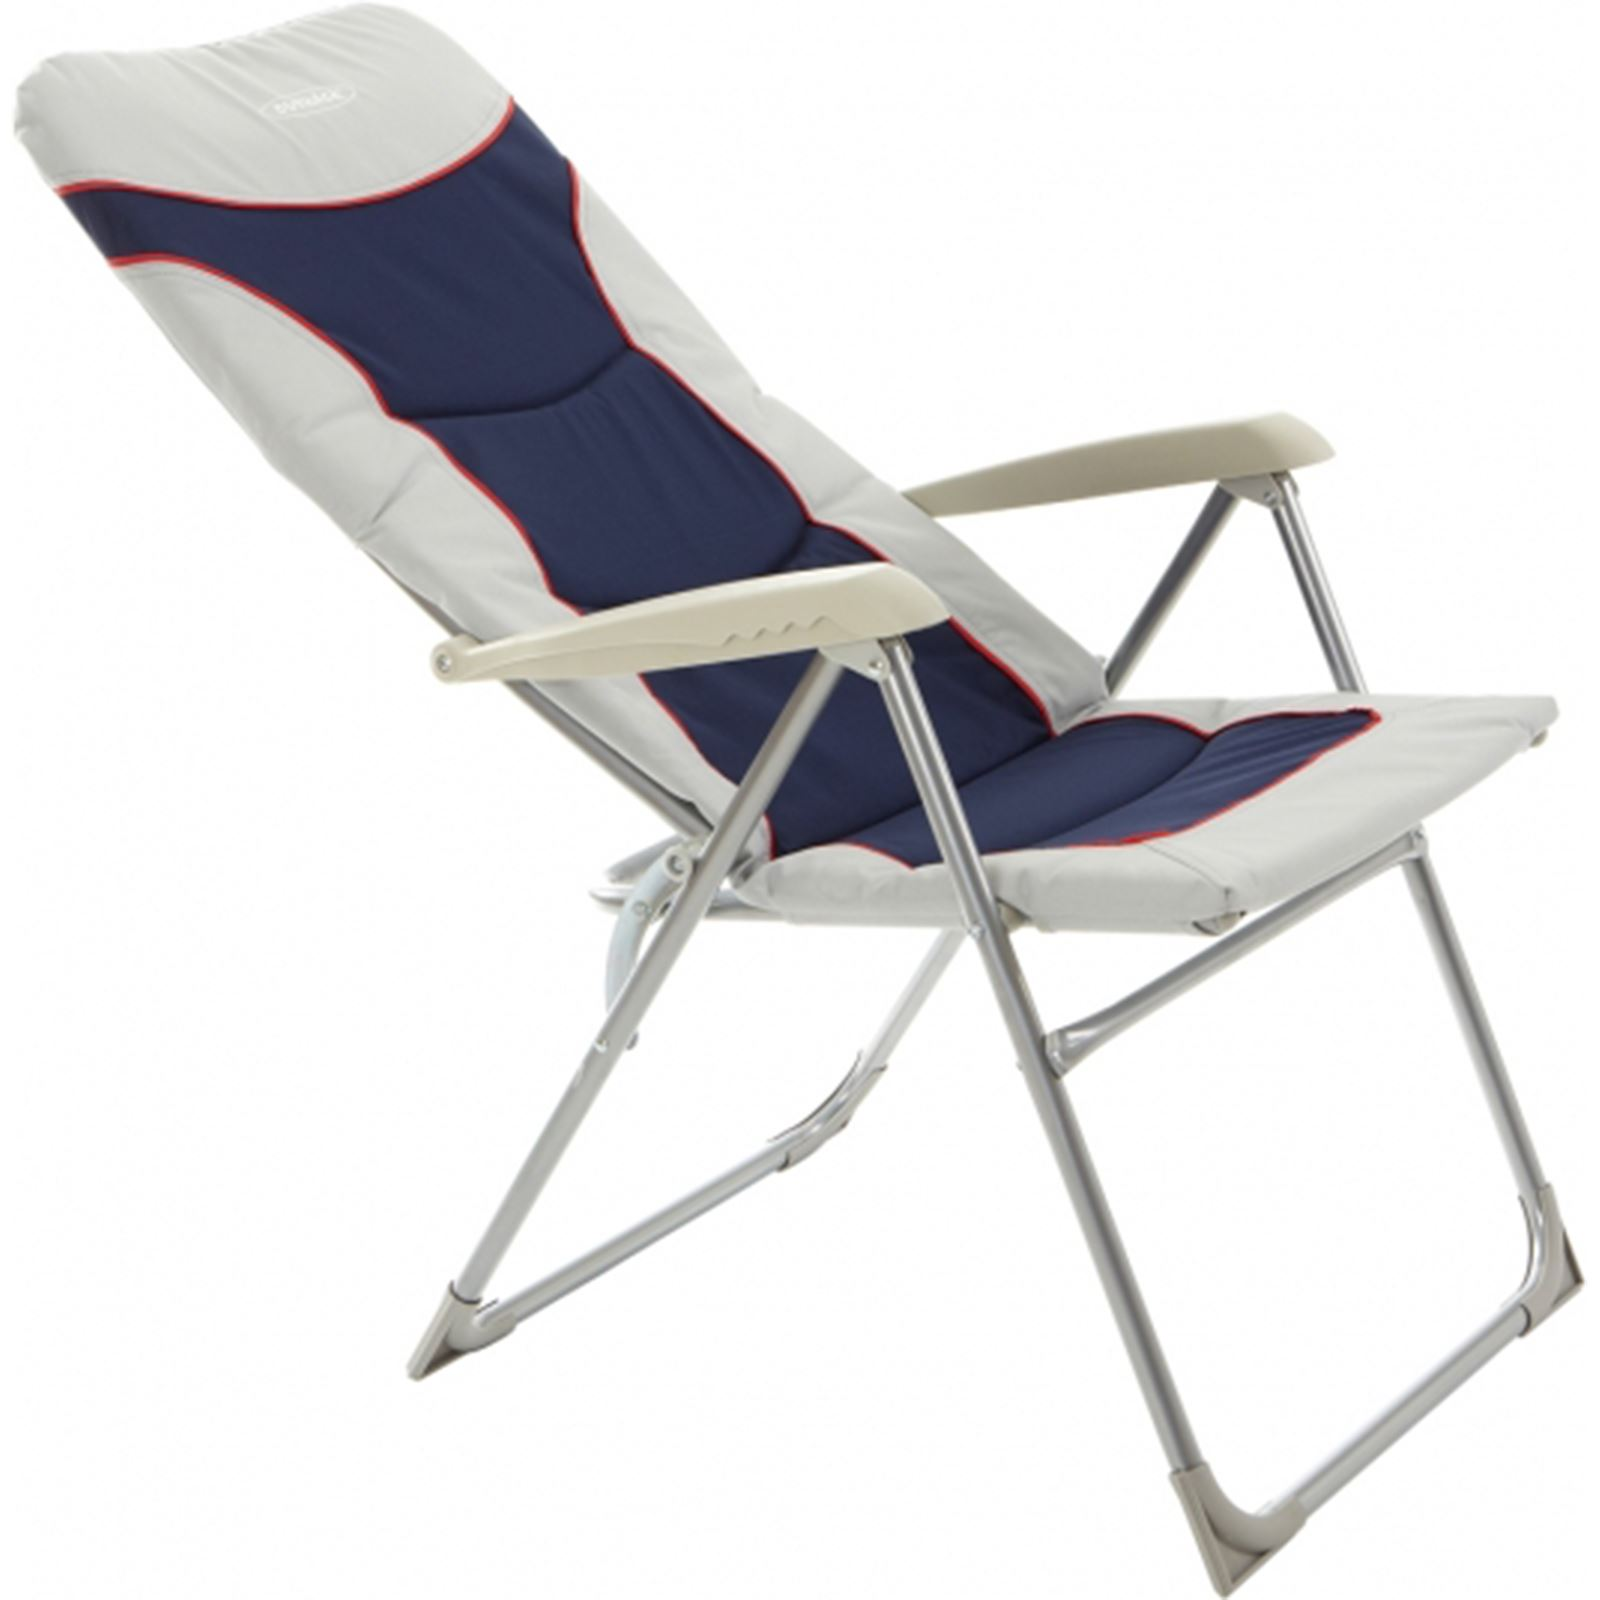 Folding Camping High Chair Outback High Back Recliner Folding Chair Blue Silver